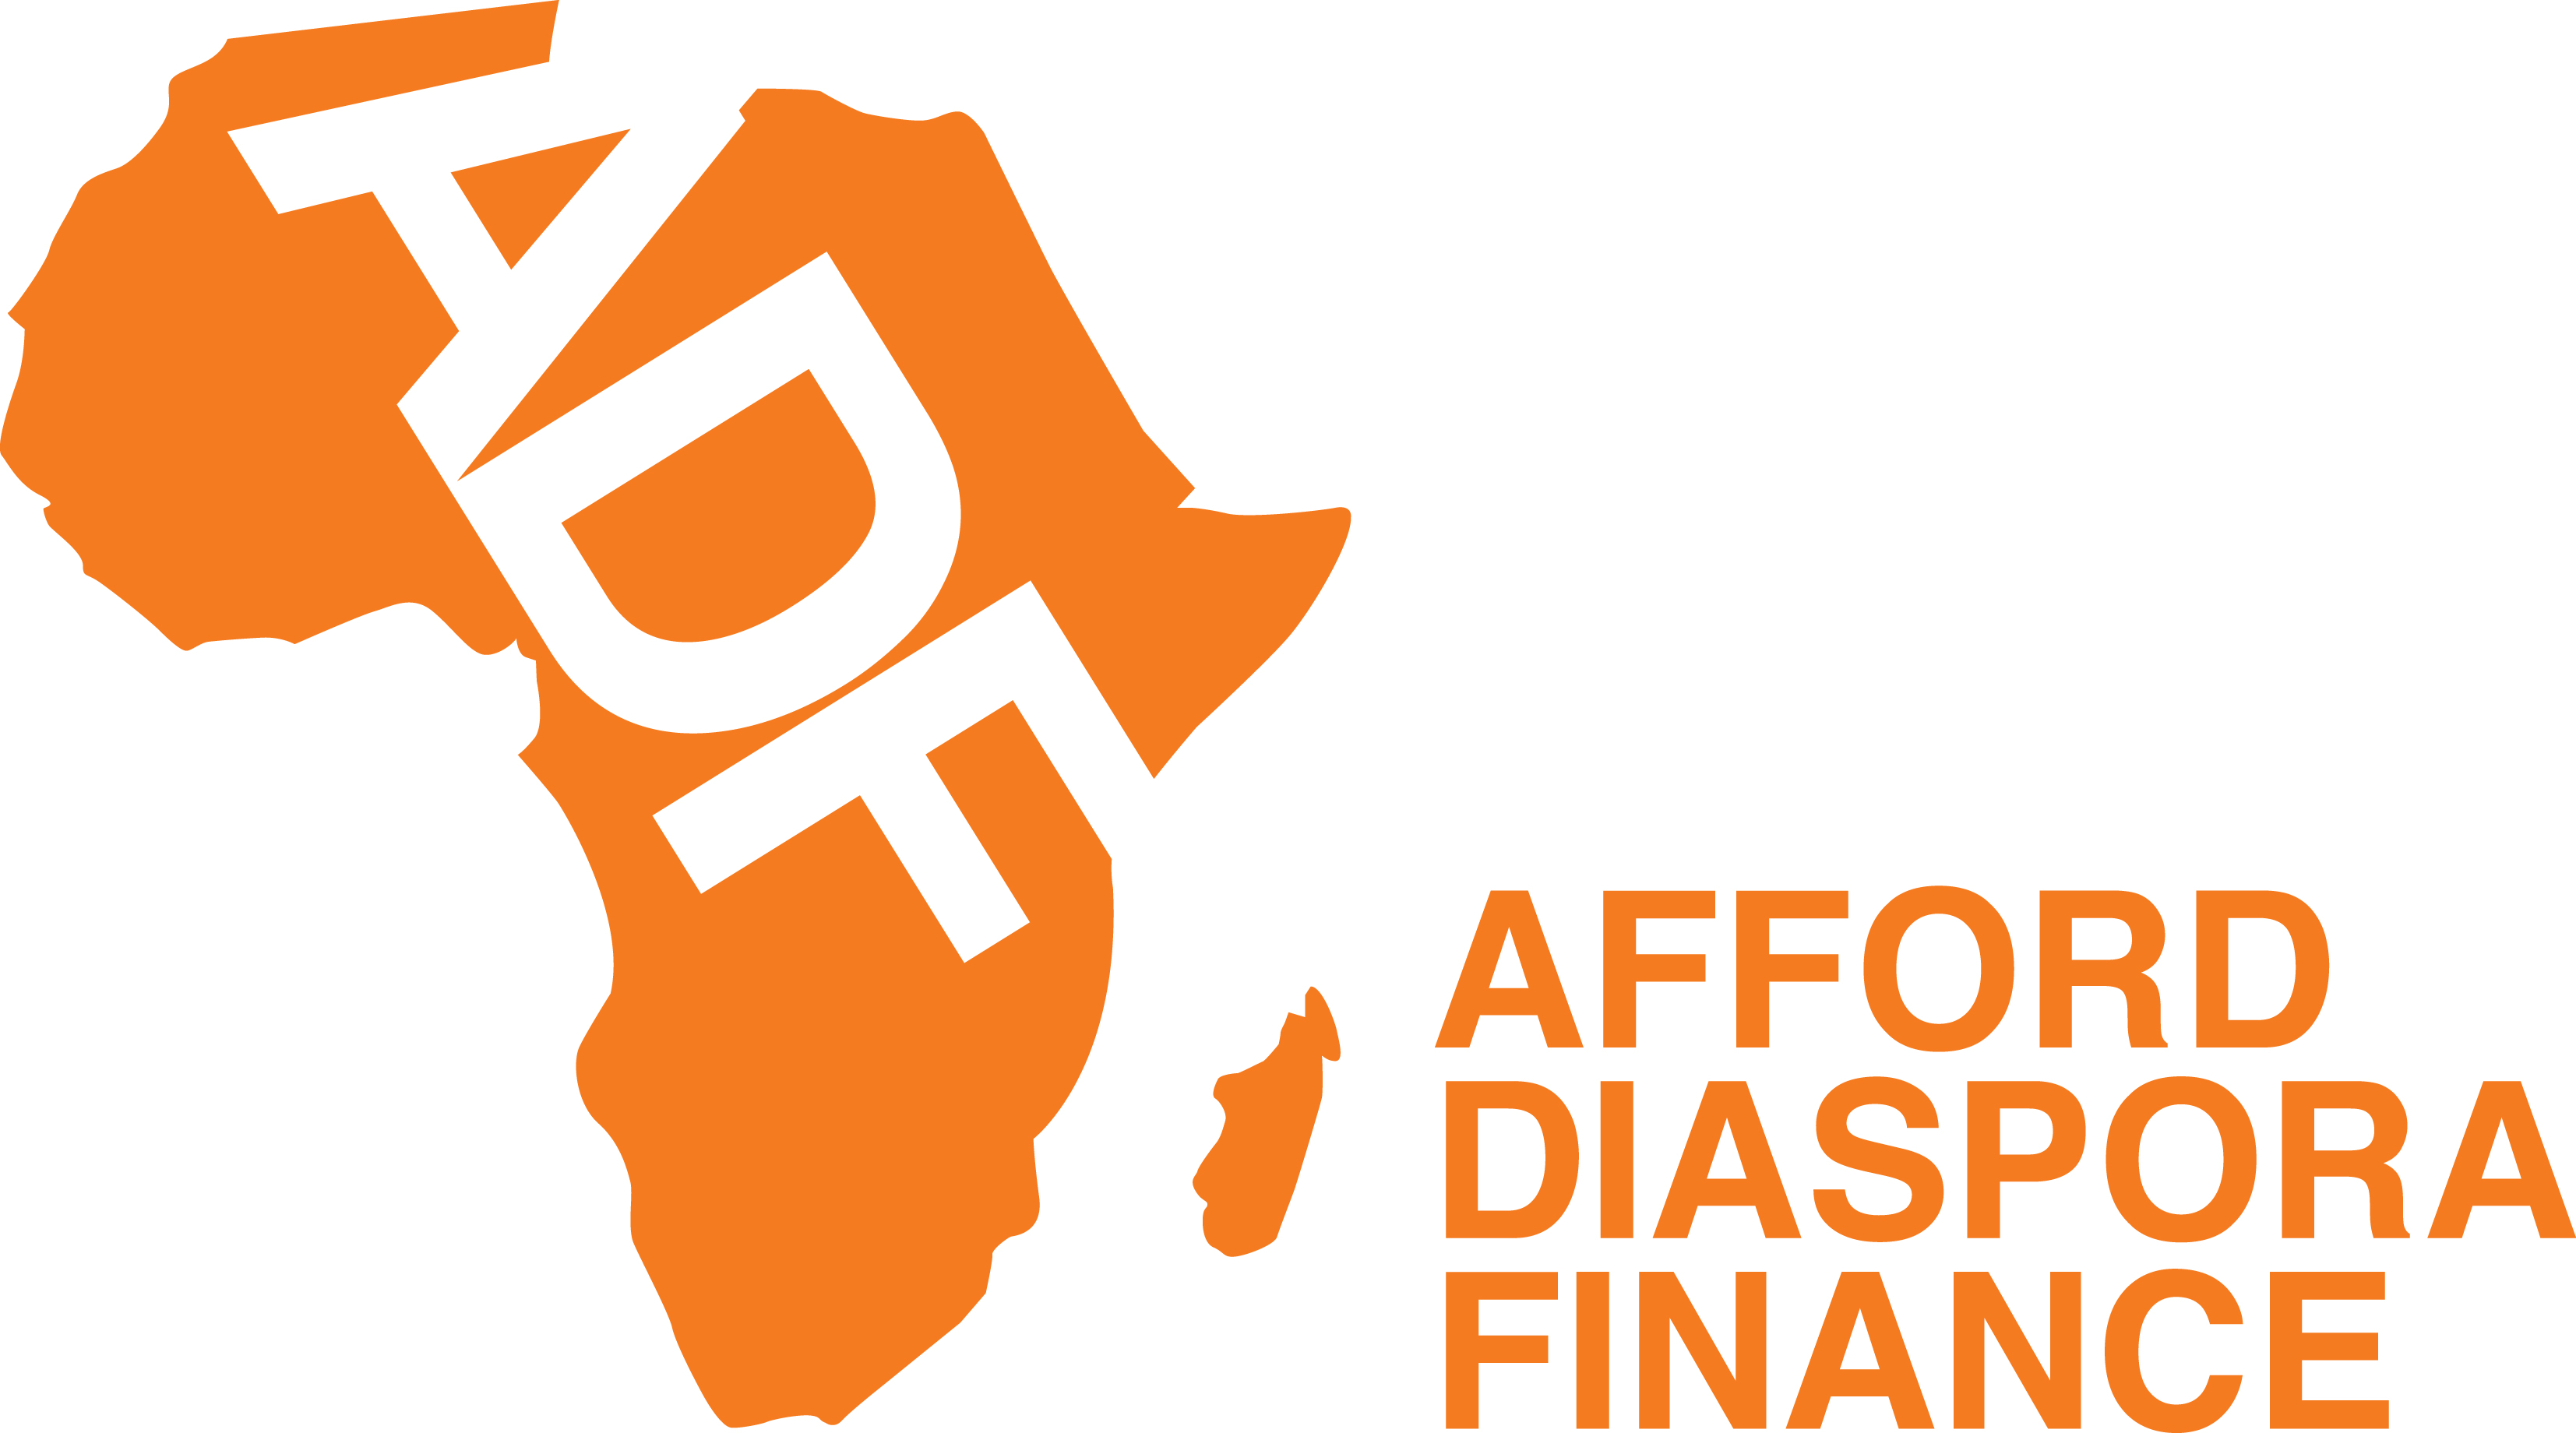 AFFORD Diaspora Finance